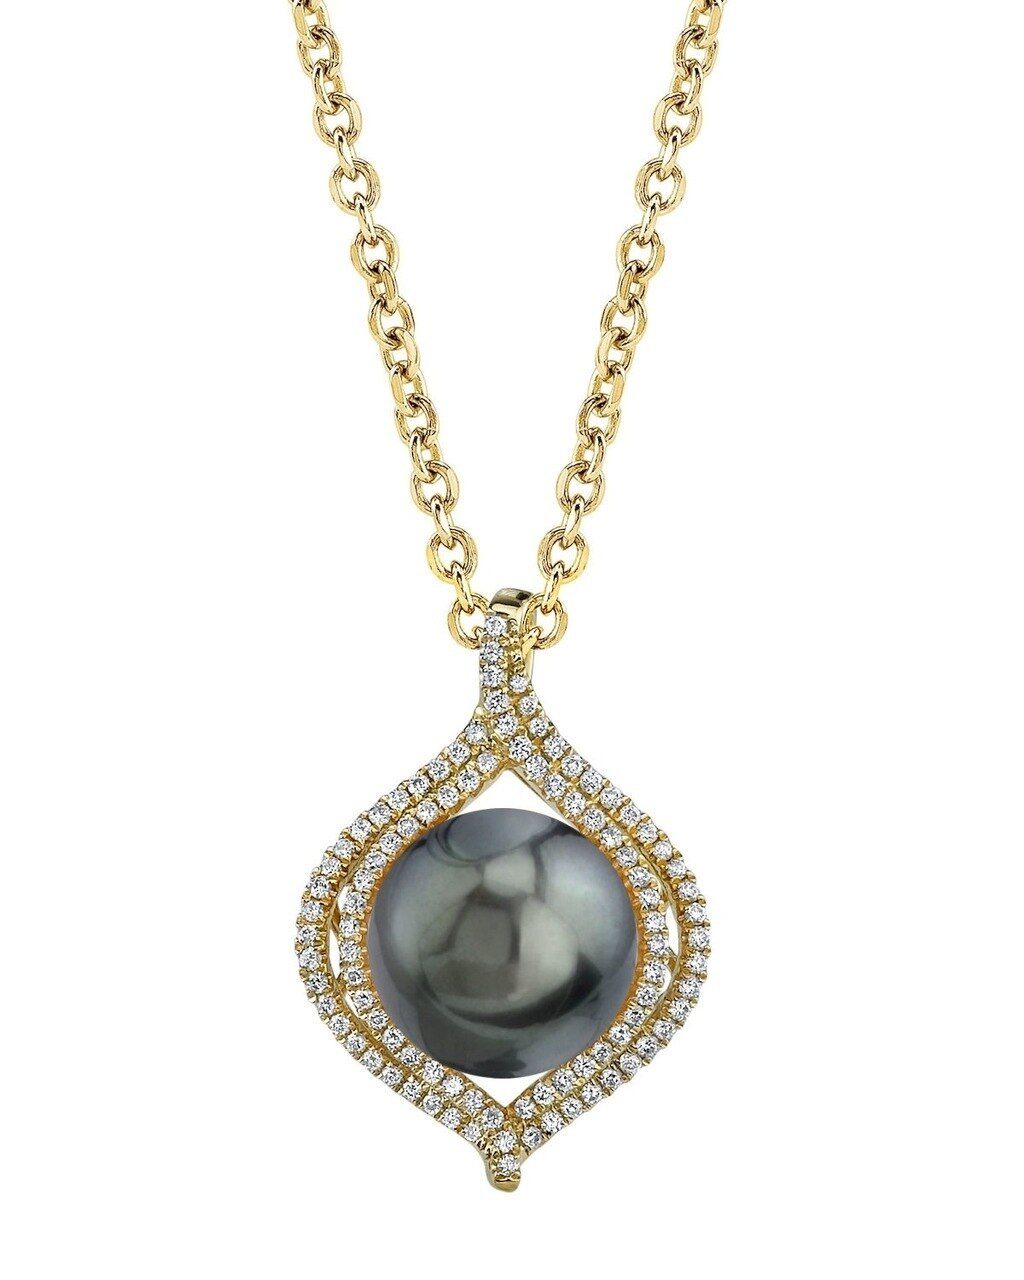 This exquisite pendant features an 12.0-13.0mm Tahitian South Sea Pearl, handpicked for its luminous luster